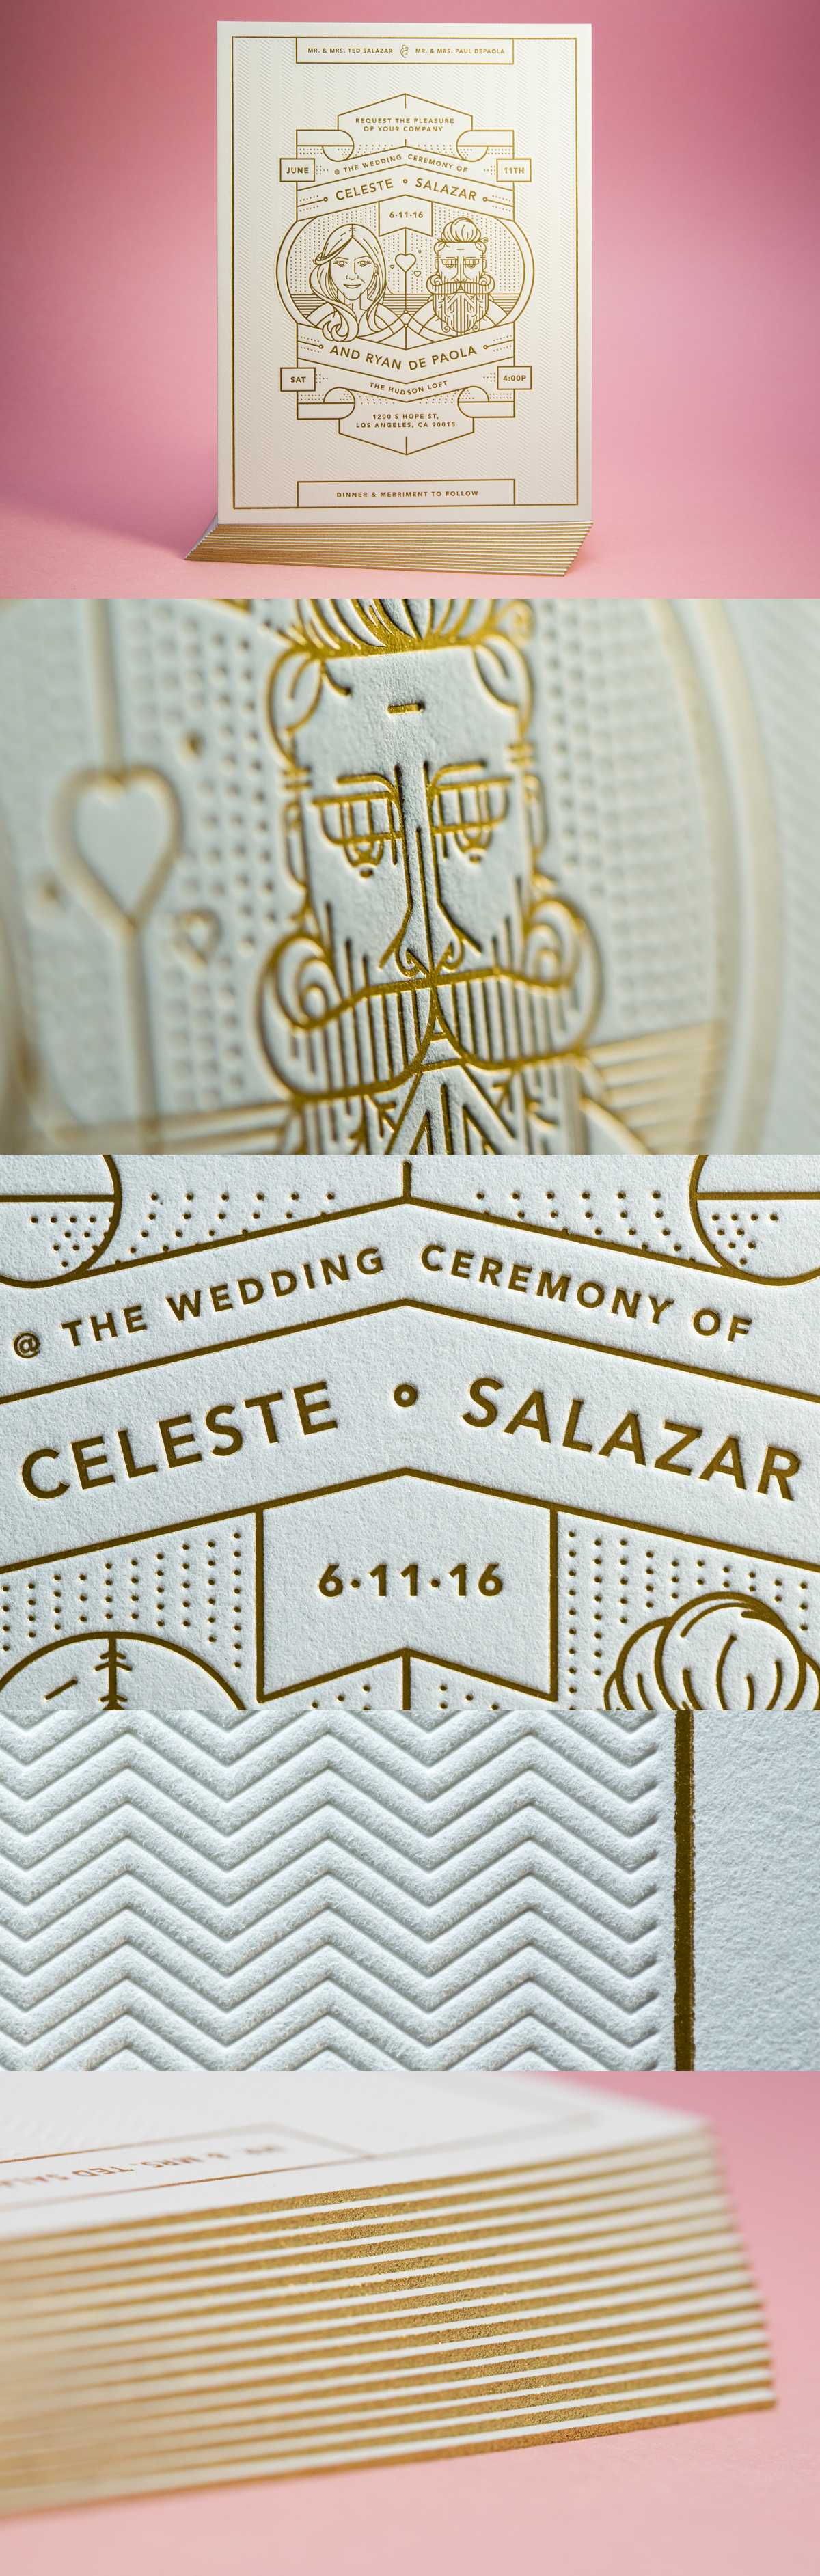 Love is in the Paper: 11 Beautiful Wedding Invitations | Invitation ...